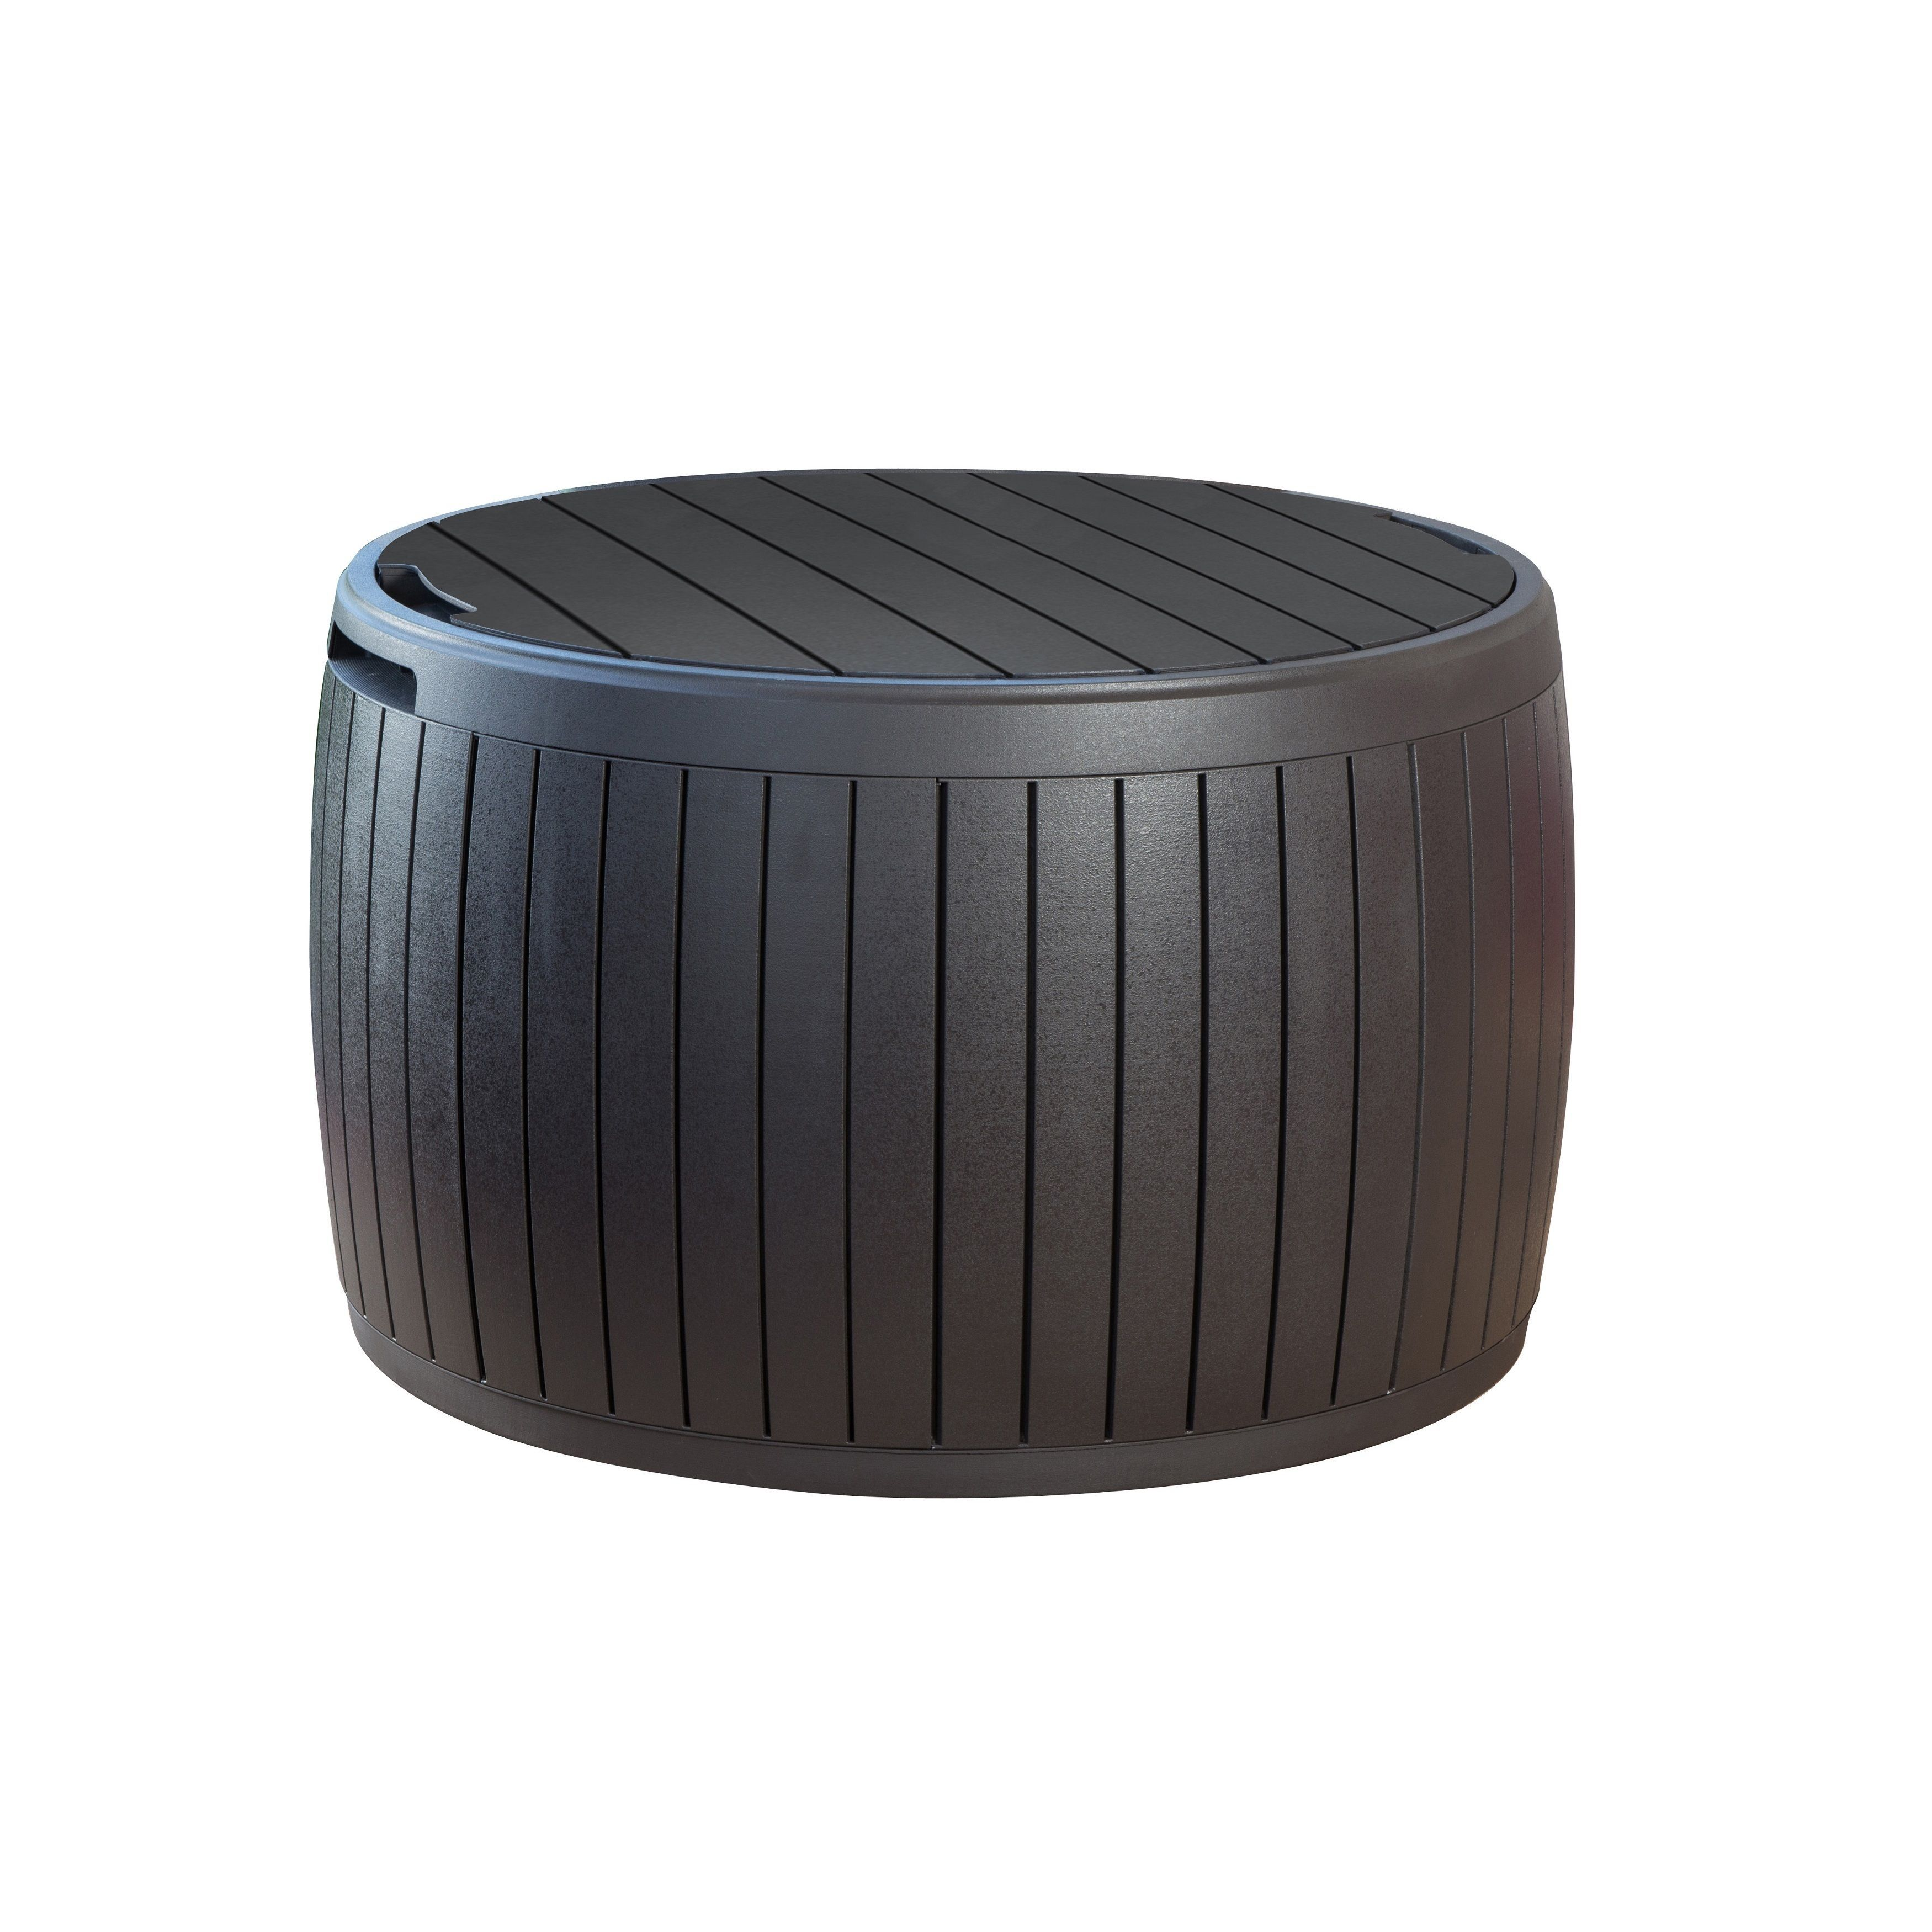 Astonishing Keter Circa Brown Outdoor Round Storage Ottoman Deck Box Ocoug Best Dining Table And Chair Ideas Images Ocougorg